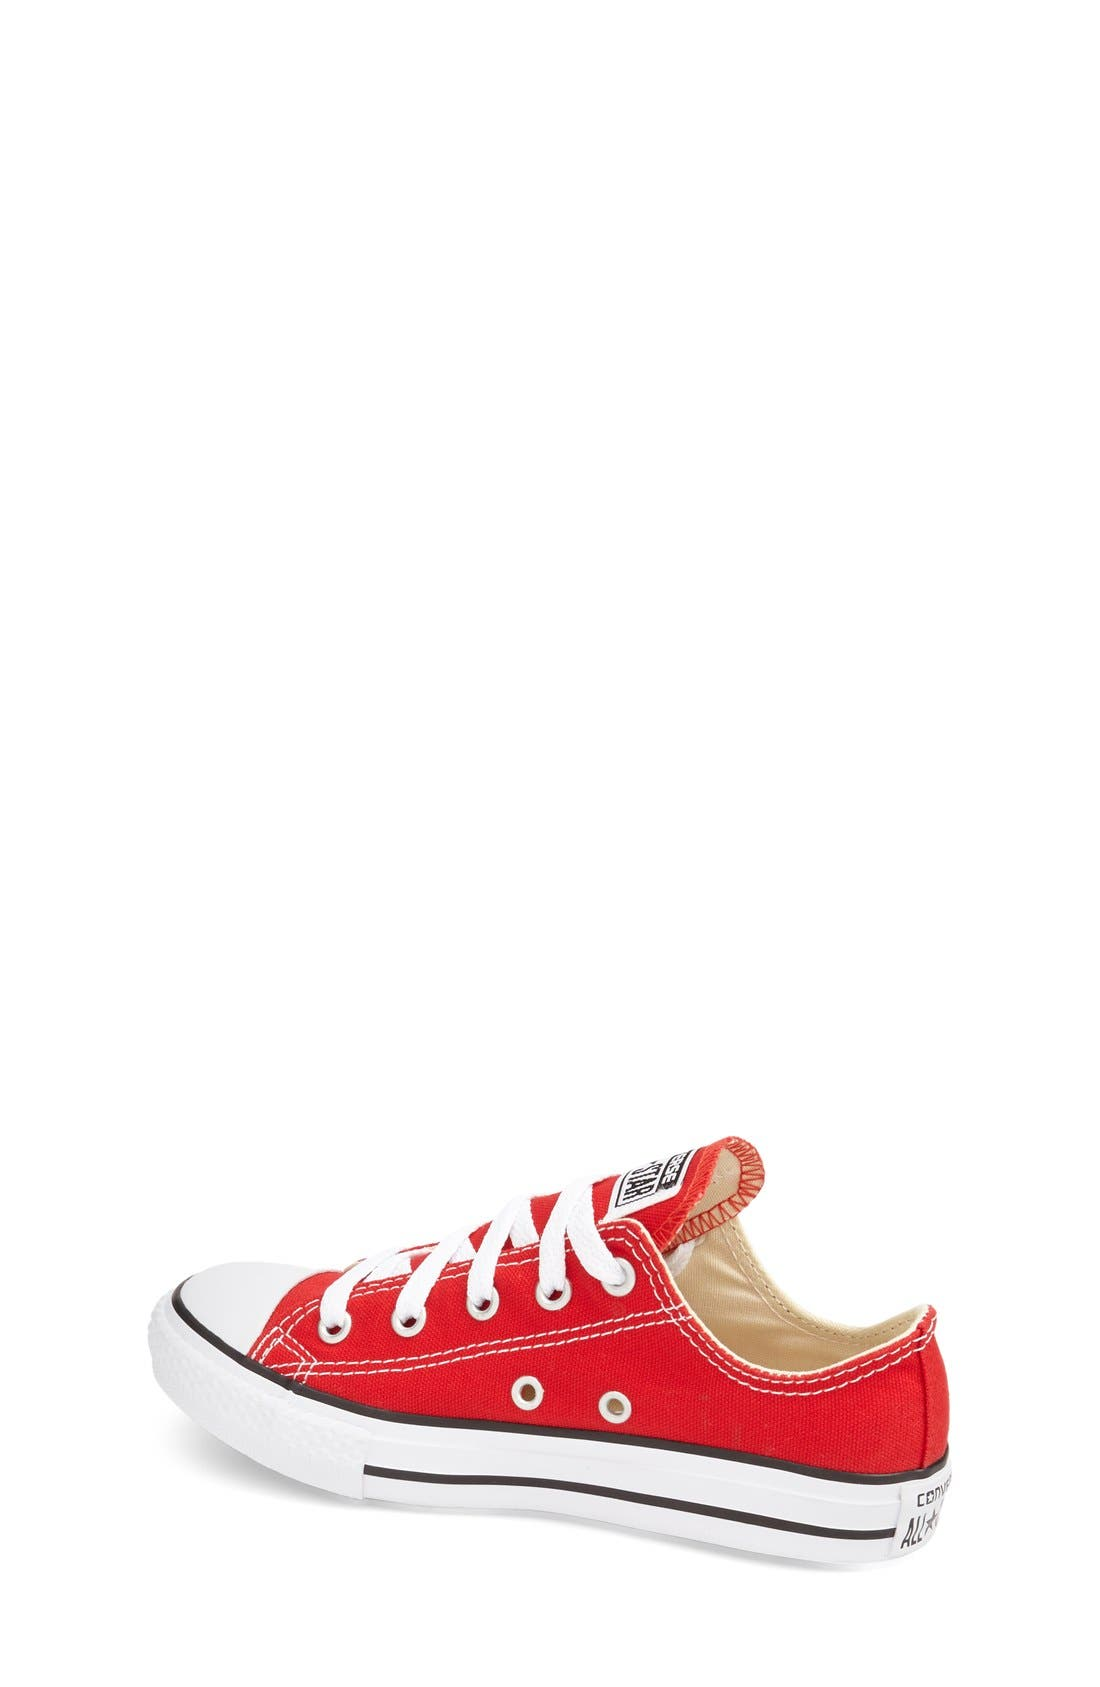 cd98be174 Kids  Shoes